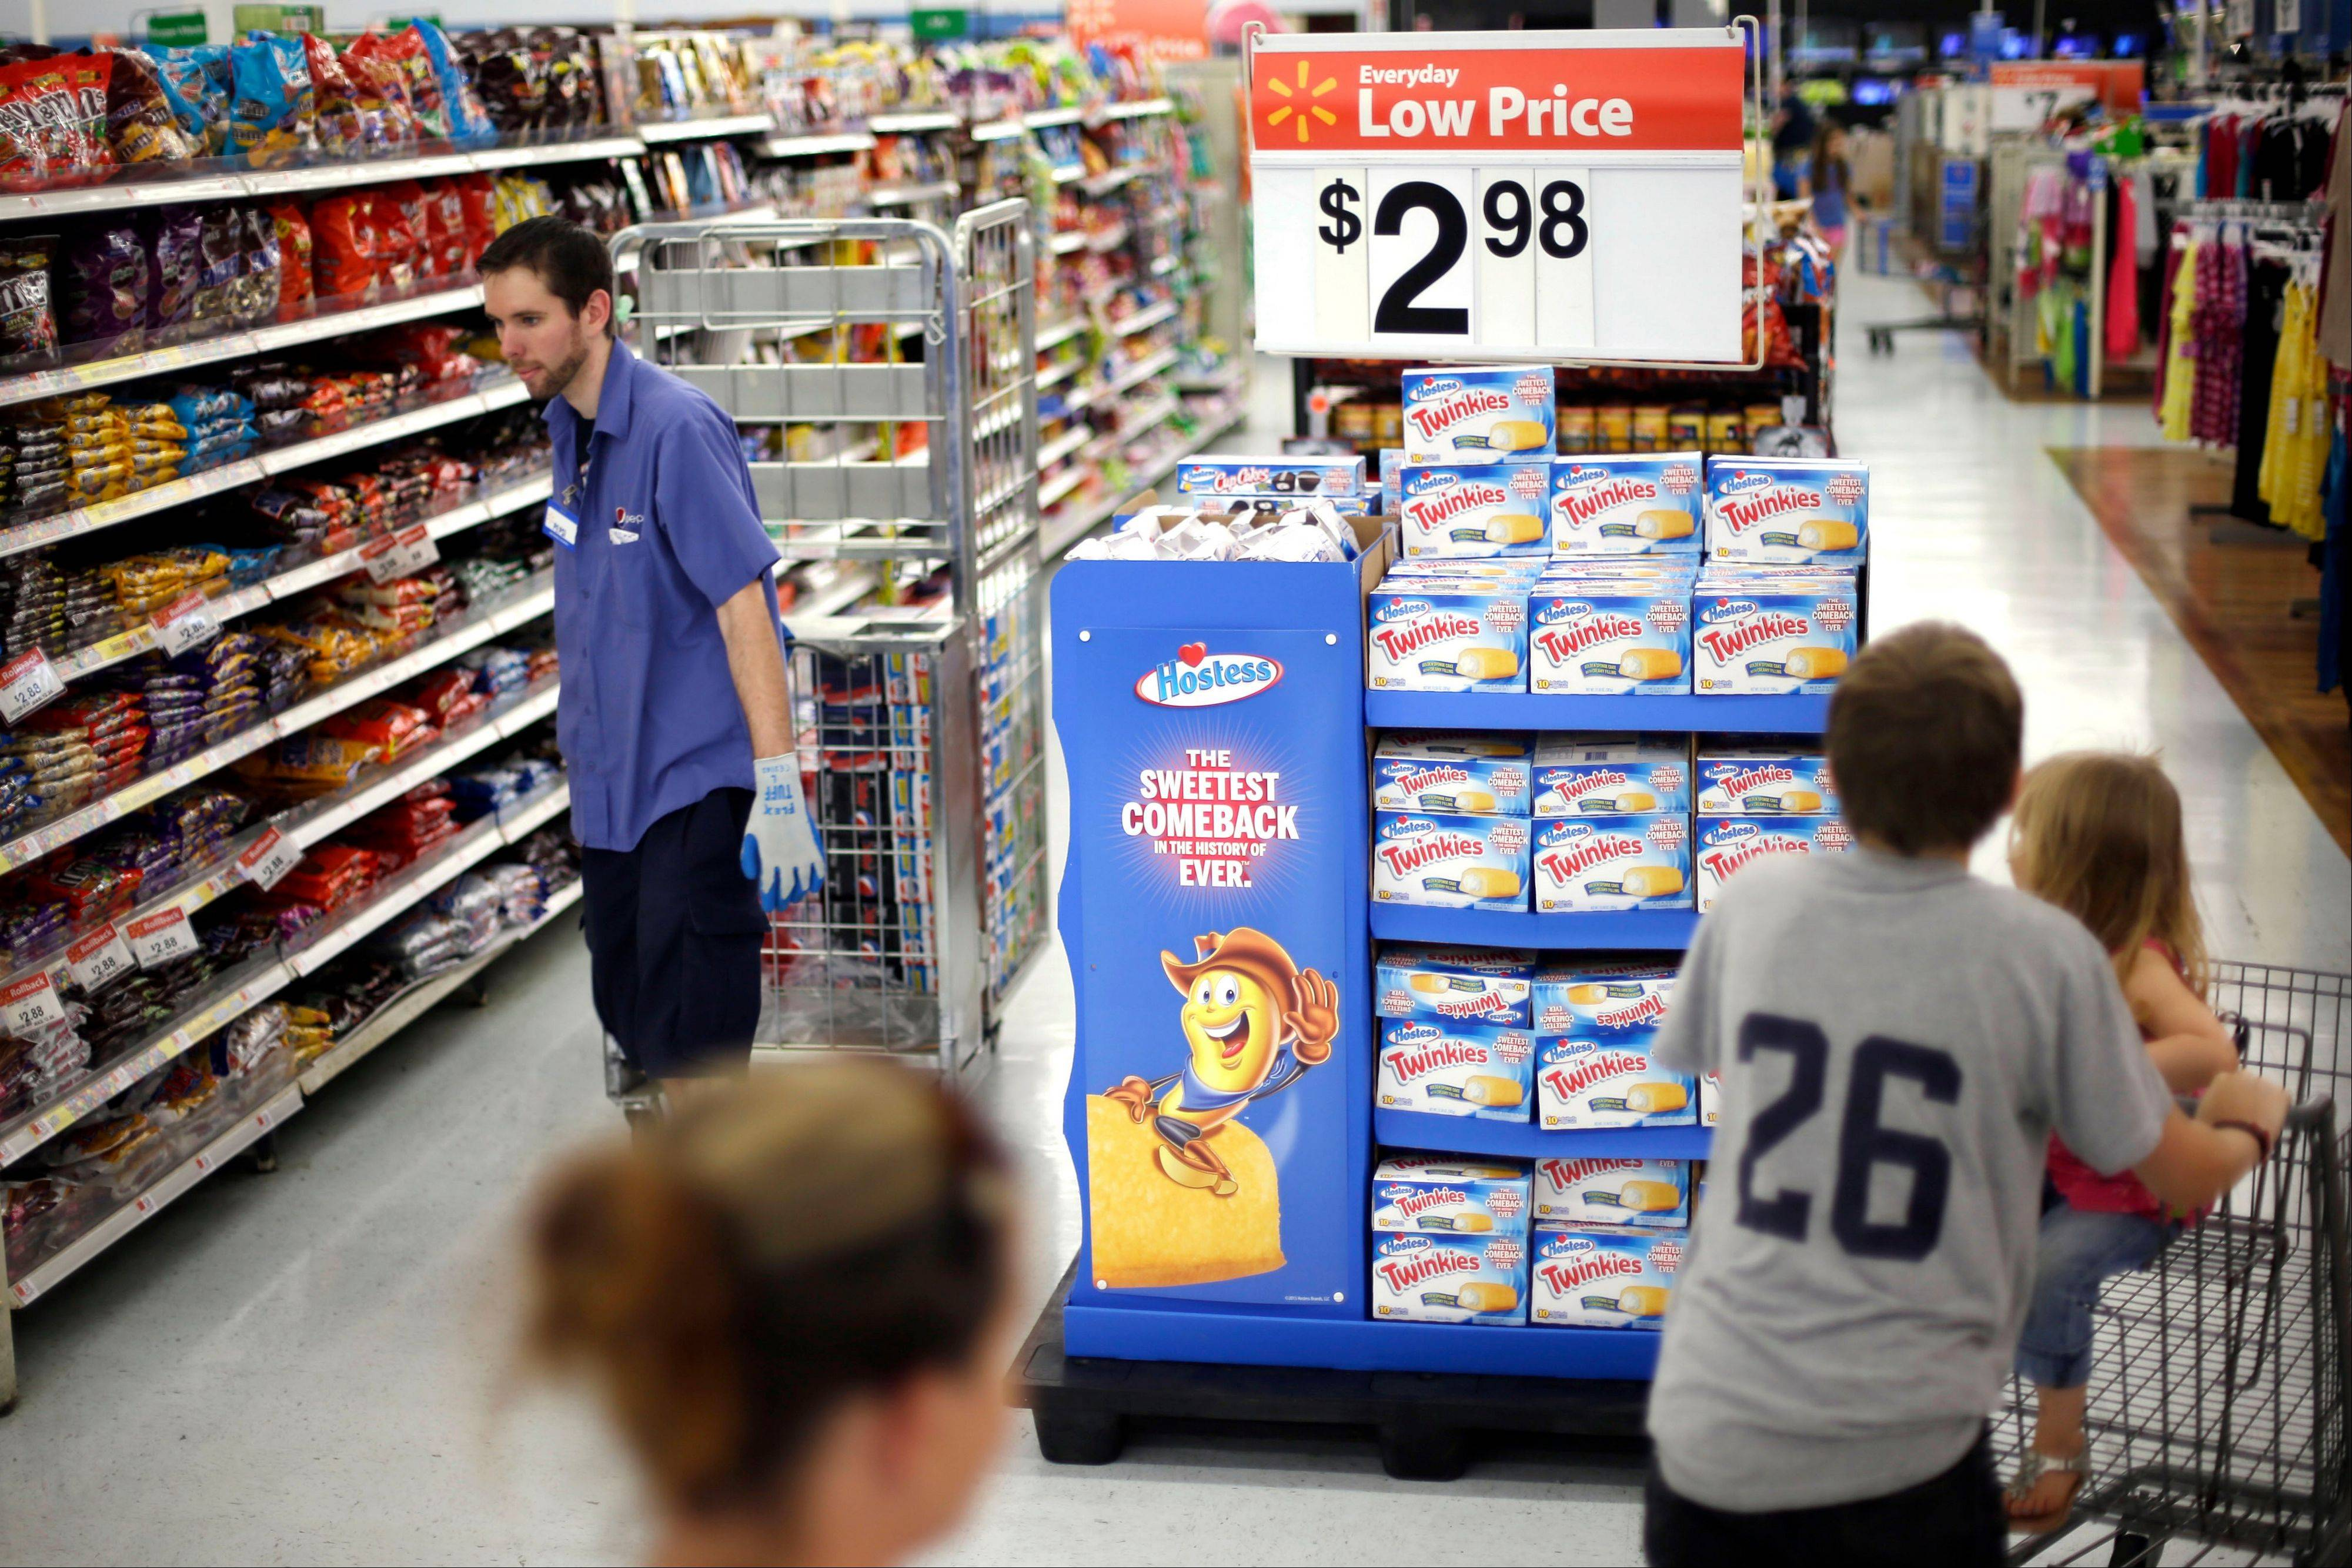 Shoppers peruse the aisles at a Wal-Mart in Bristol, Pa. Americans increased their spending at an annual rate of just 1.8 percent in the April-June quarter, down from a 2.3 percent rate in the January-March period. Consumer spending is expected to improve in the second half of the year. But most economists foresee only a slight acceleration to an annual rate of 2 percent to 2.5 percent.